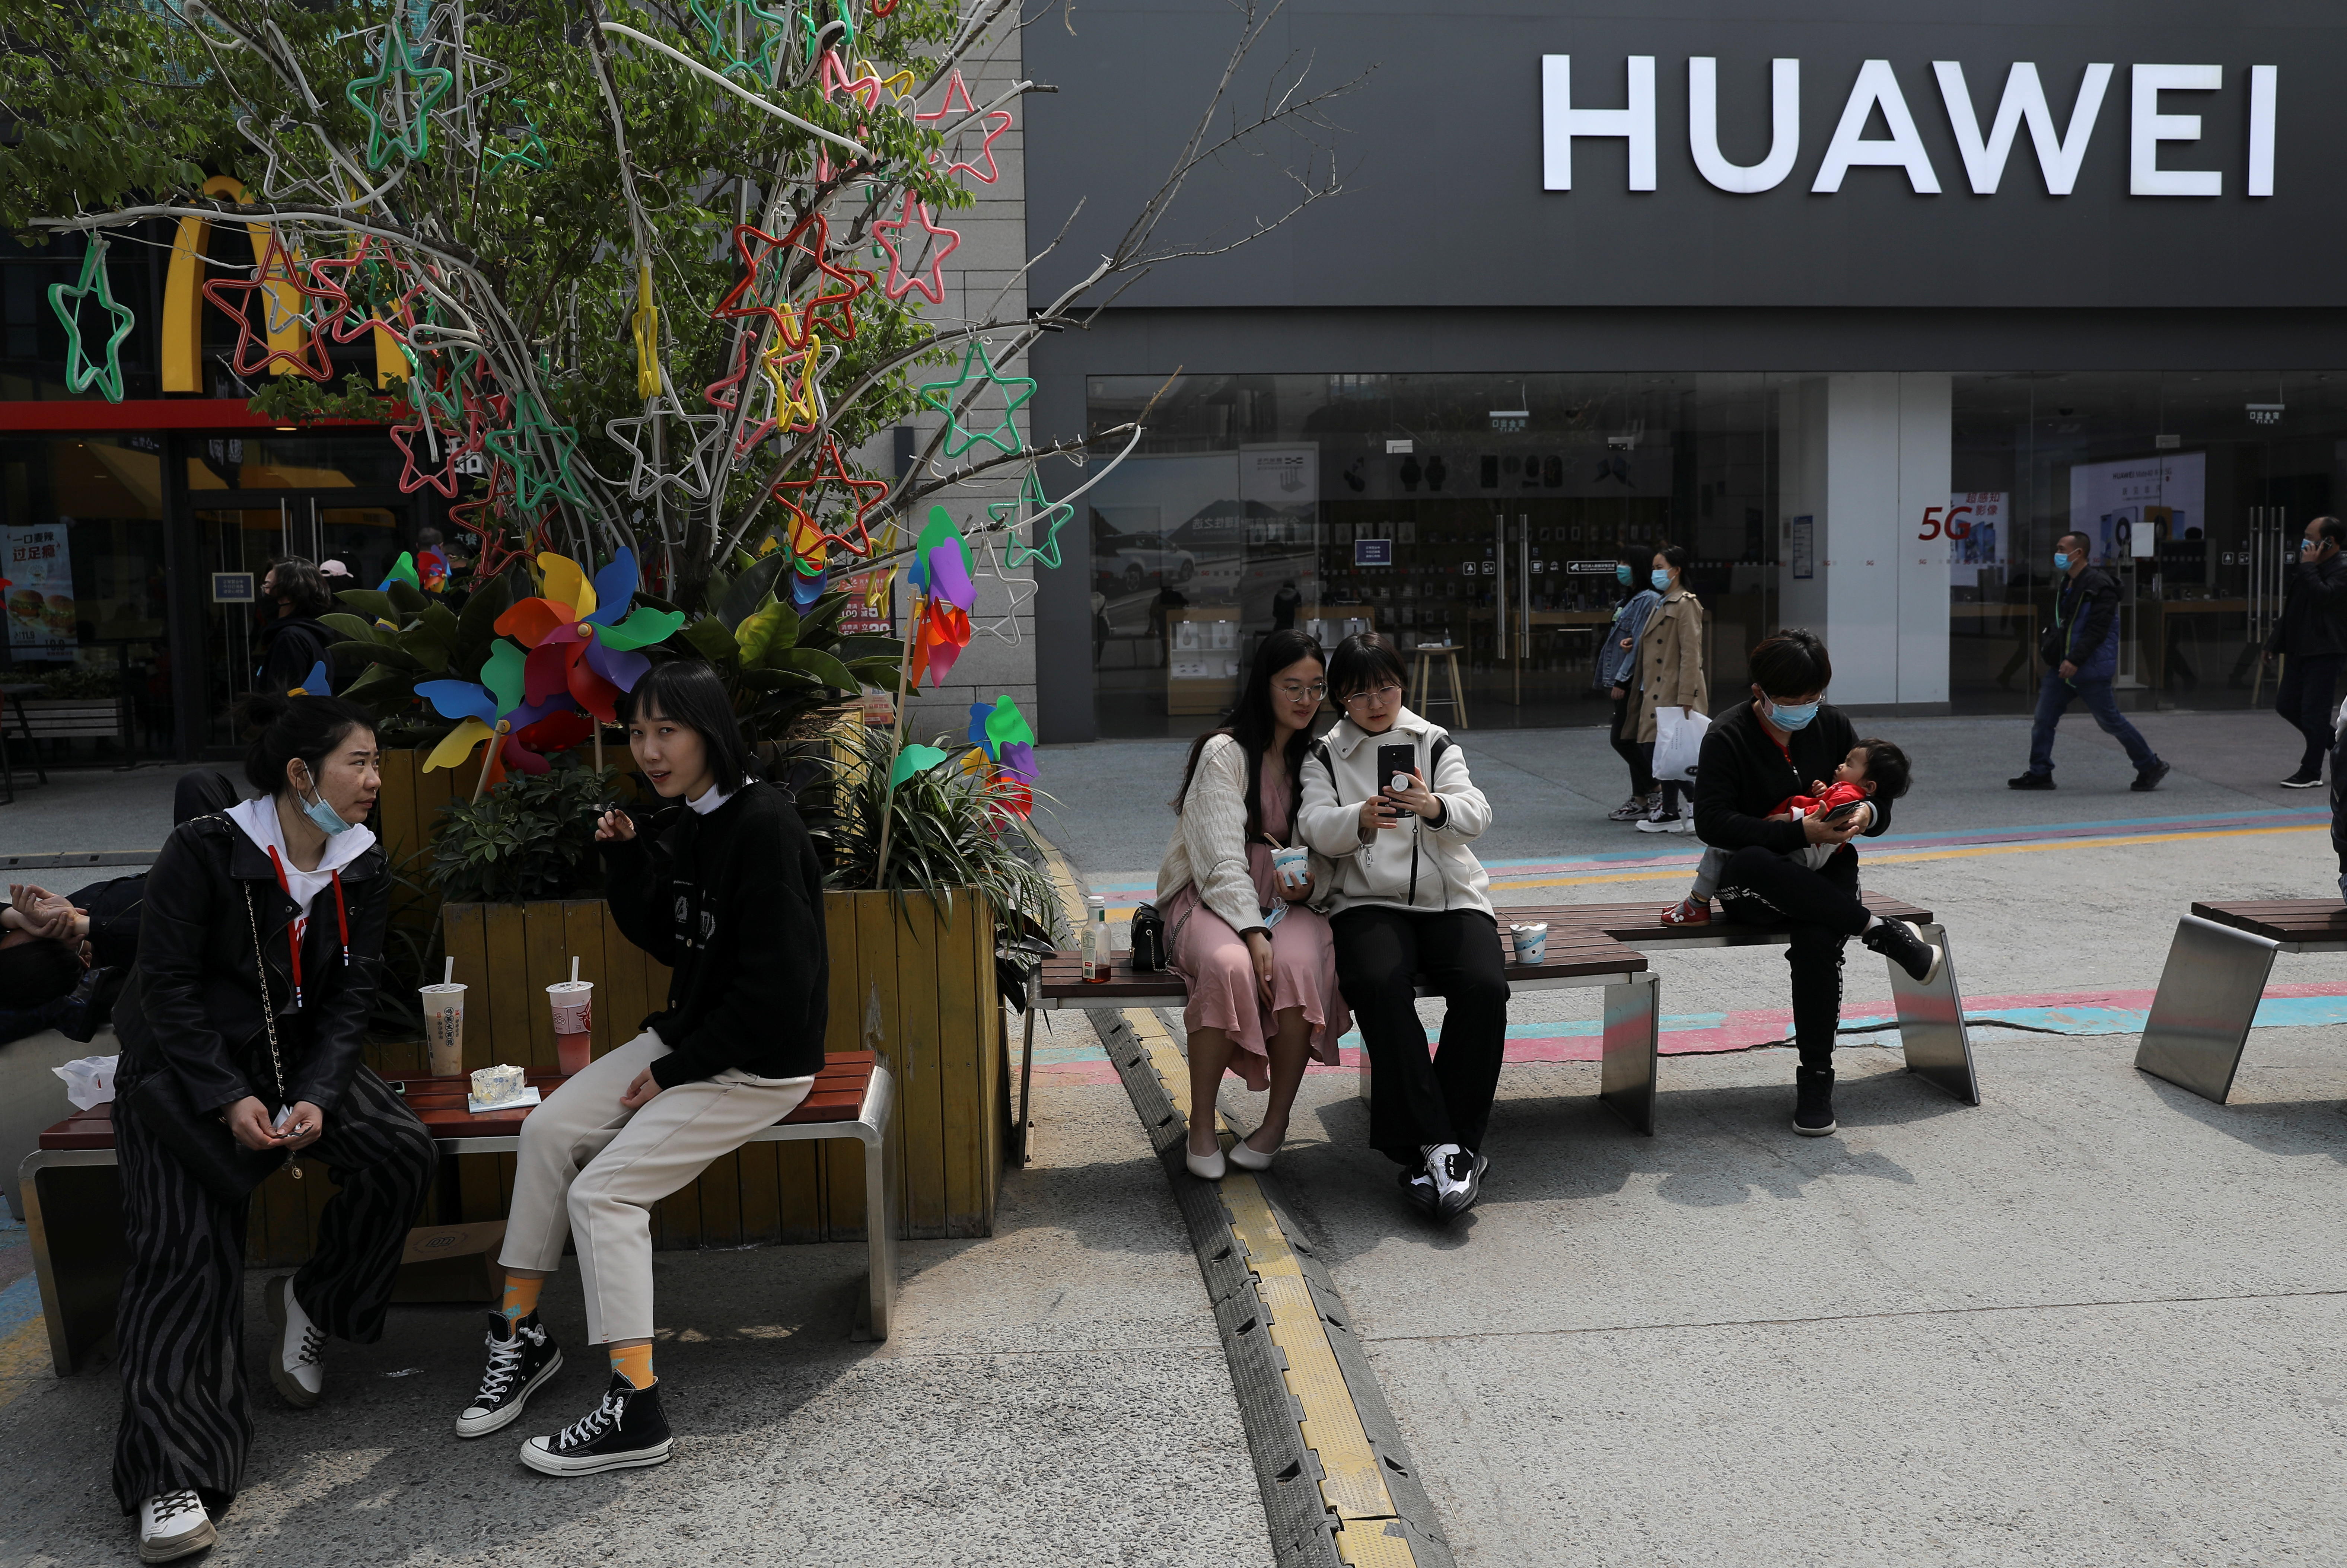 People rest in front of a Huawei store at a shopping complex in Beijing, China April 15, 2021. Picture taken April 15, 2021. REUTERS/Tingshu Wang